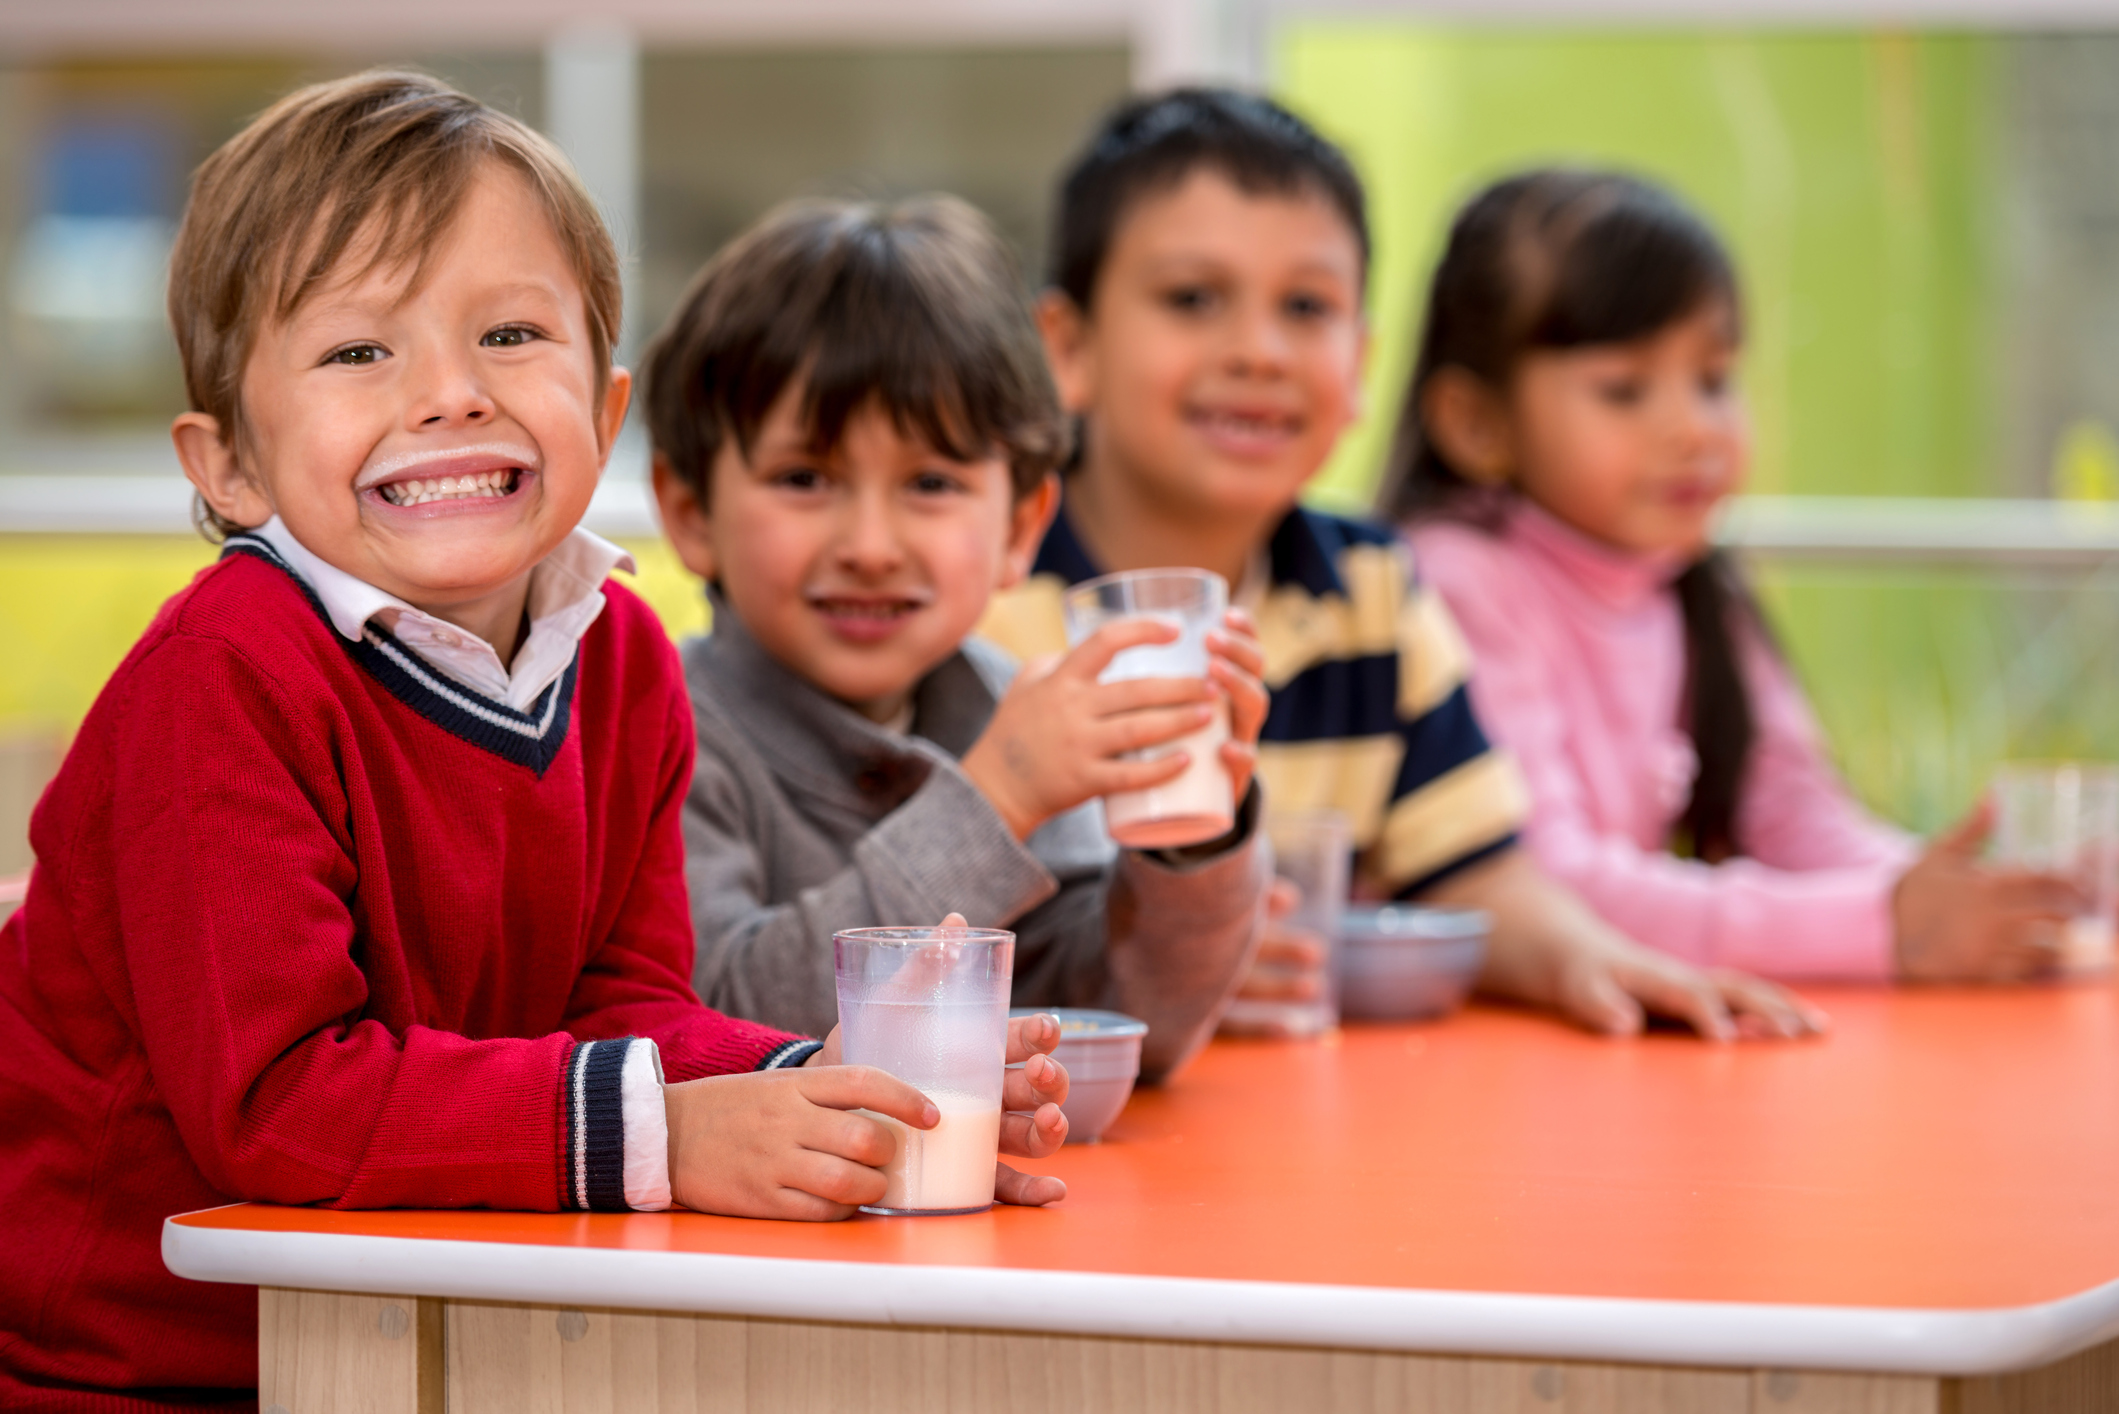 Progress in Delaware: Healthier Kids' Meals!